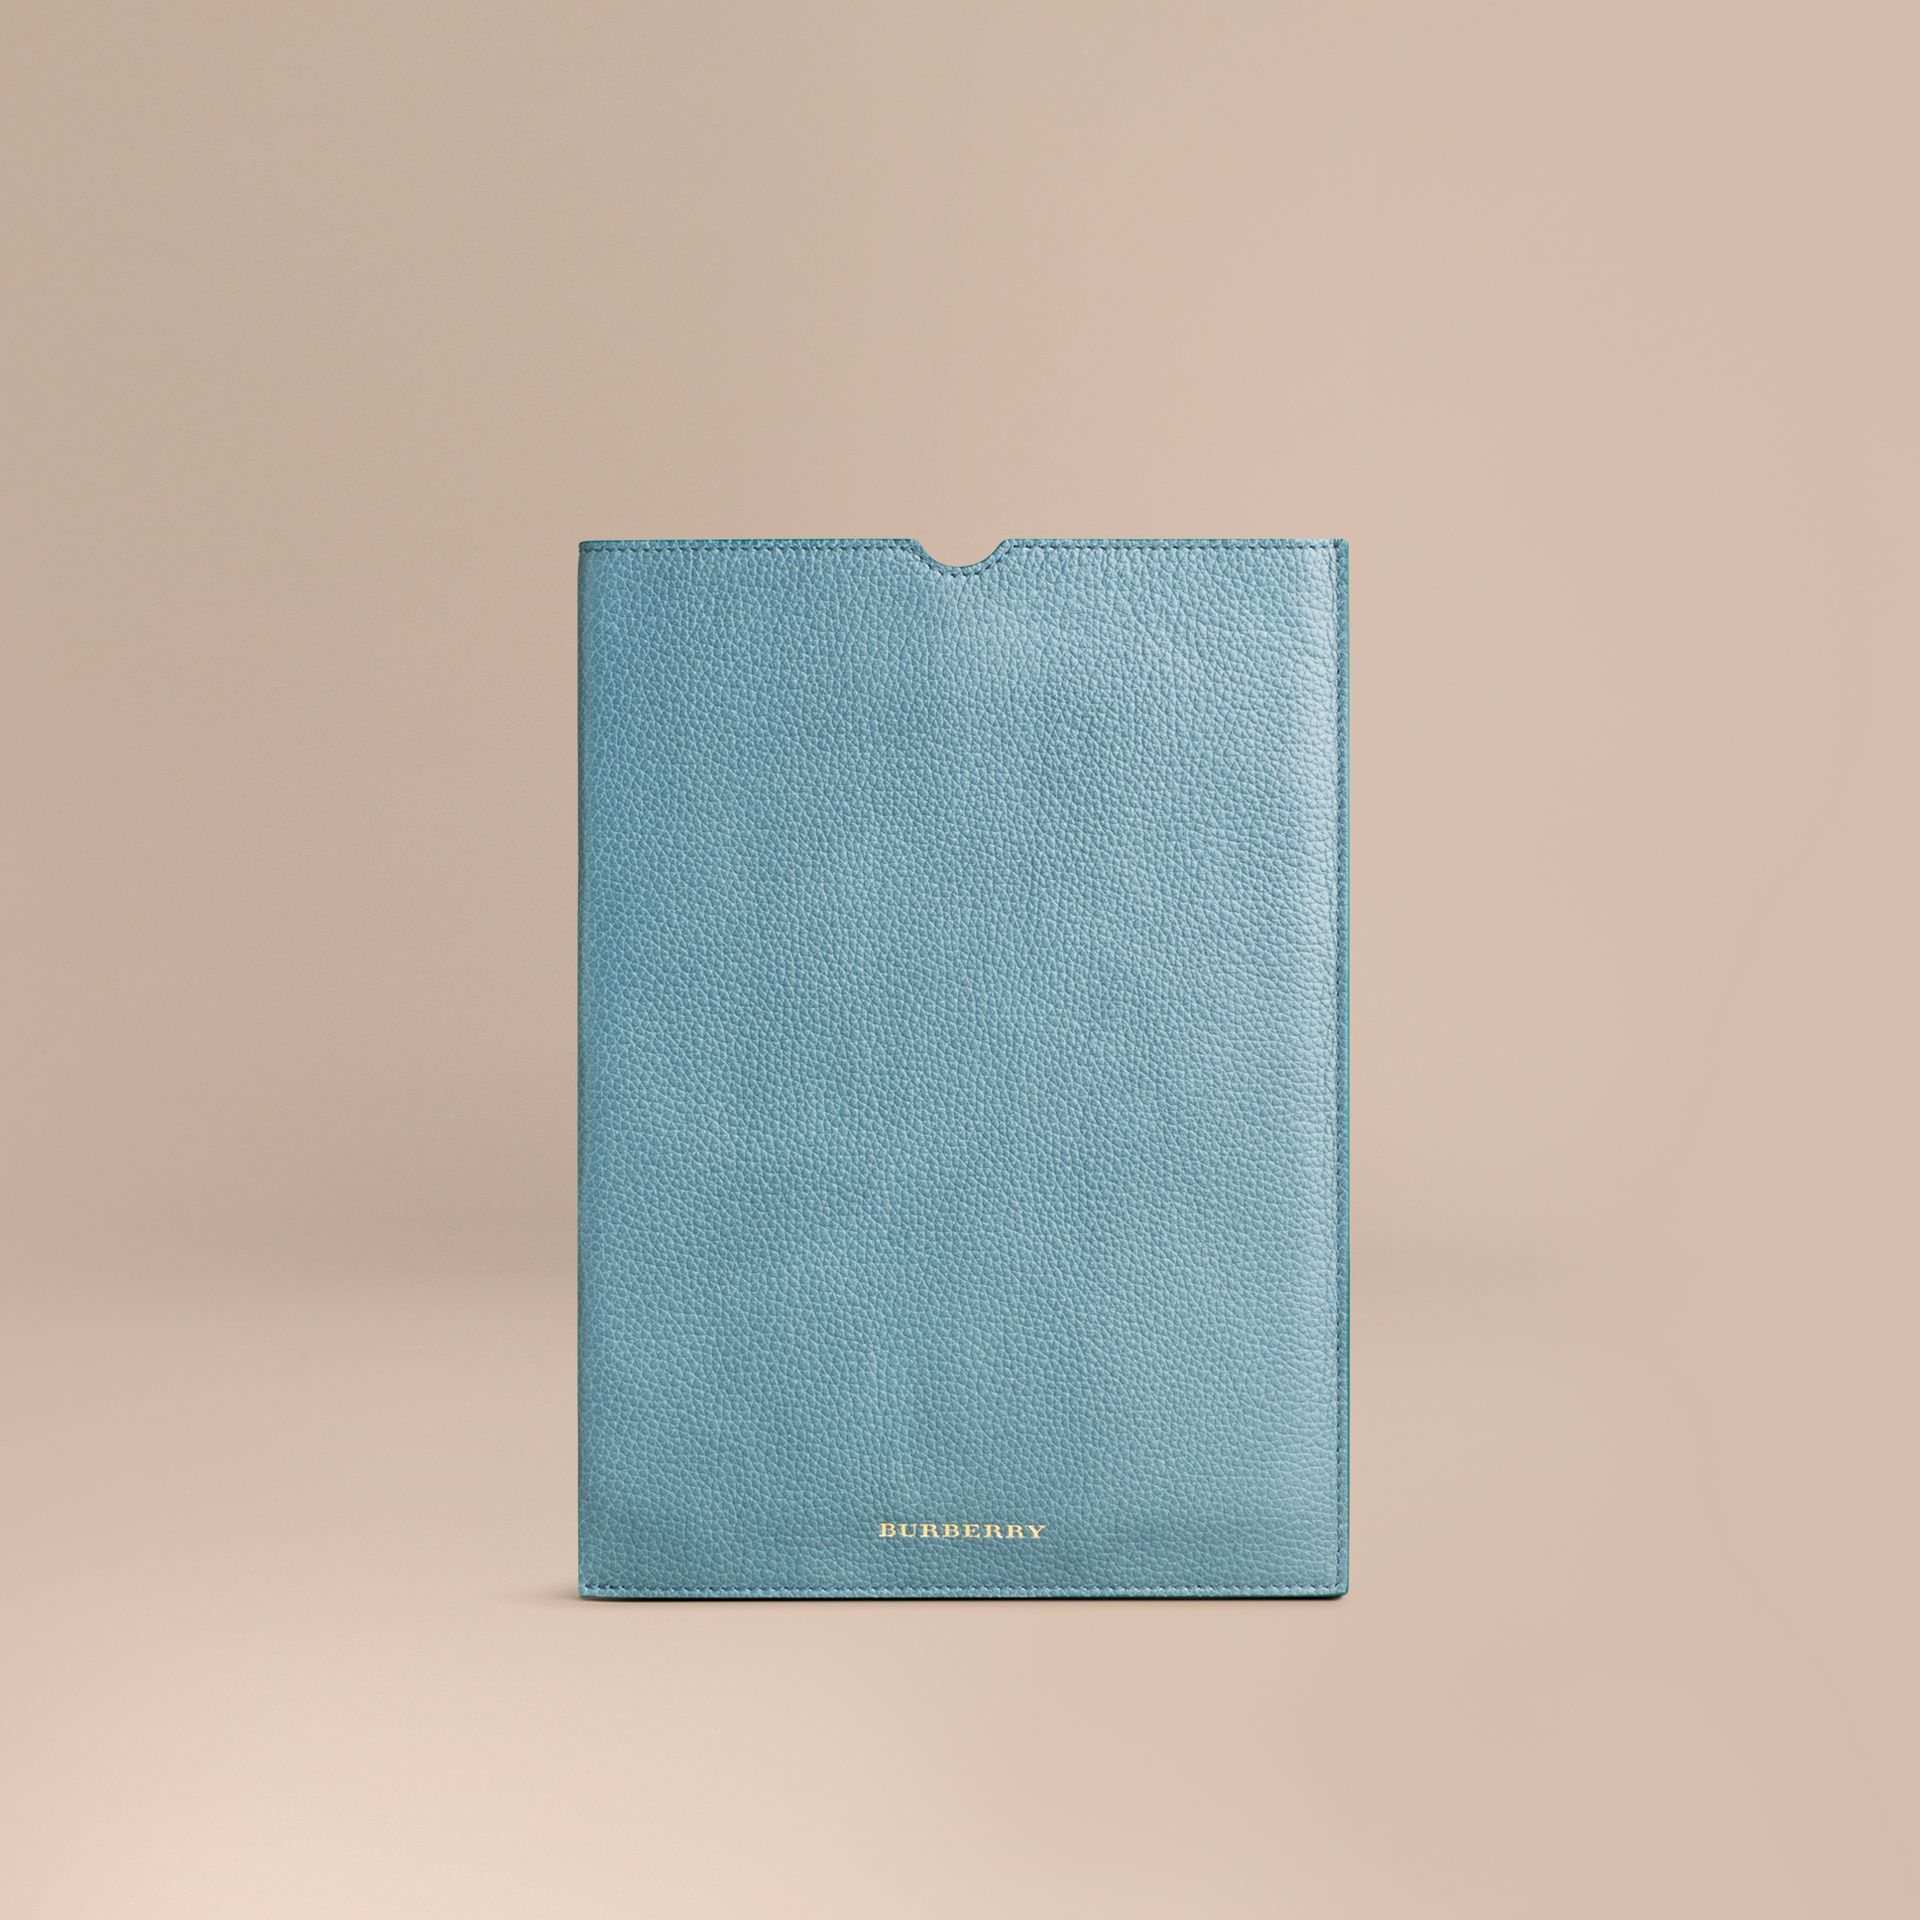 Dusty teal Grainy Leather iPad Case Dusty Teal - gallery image 1